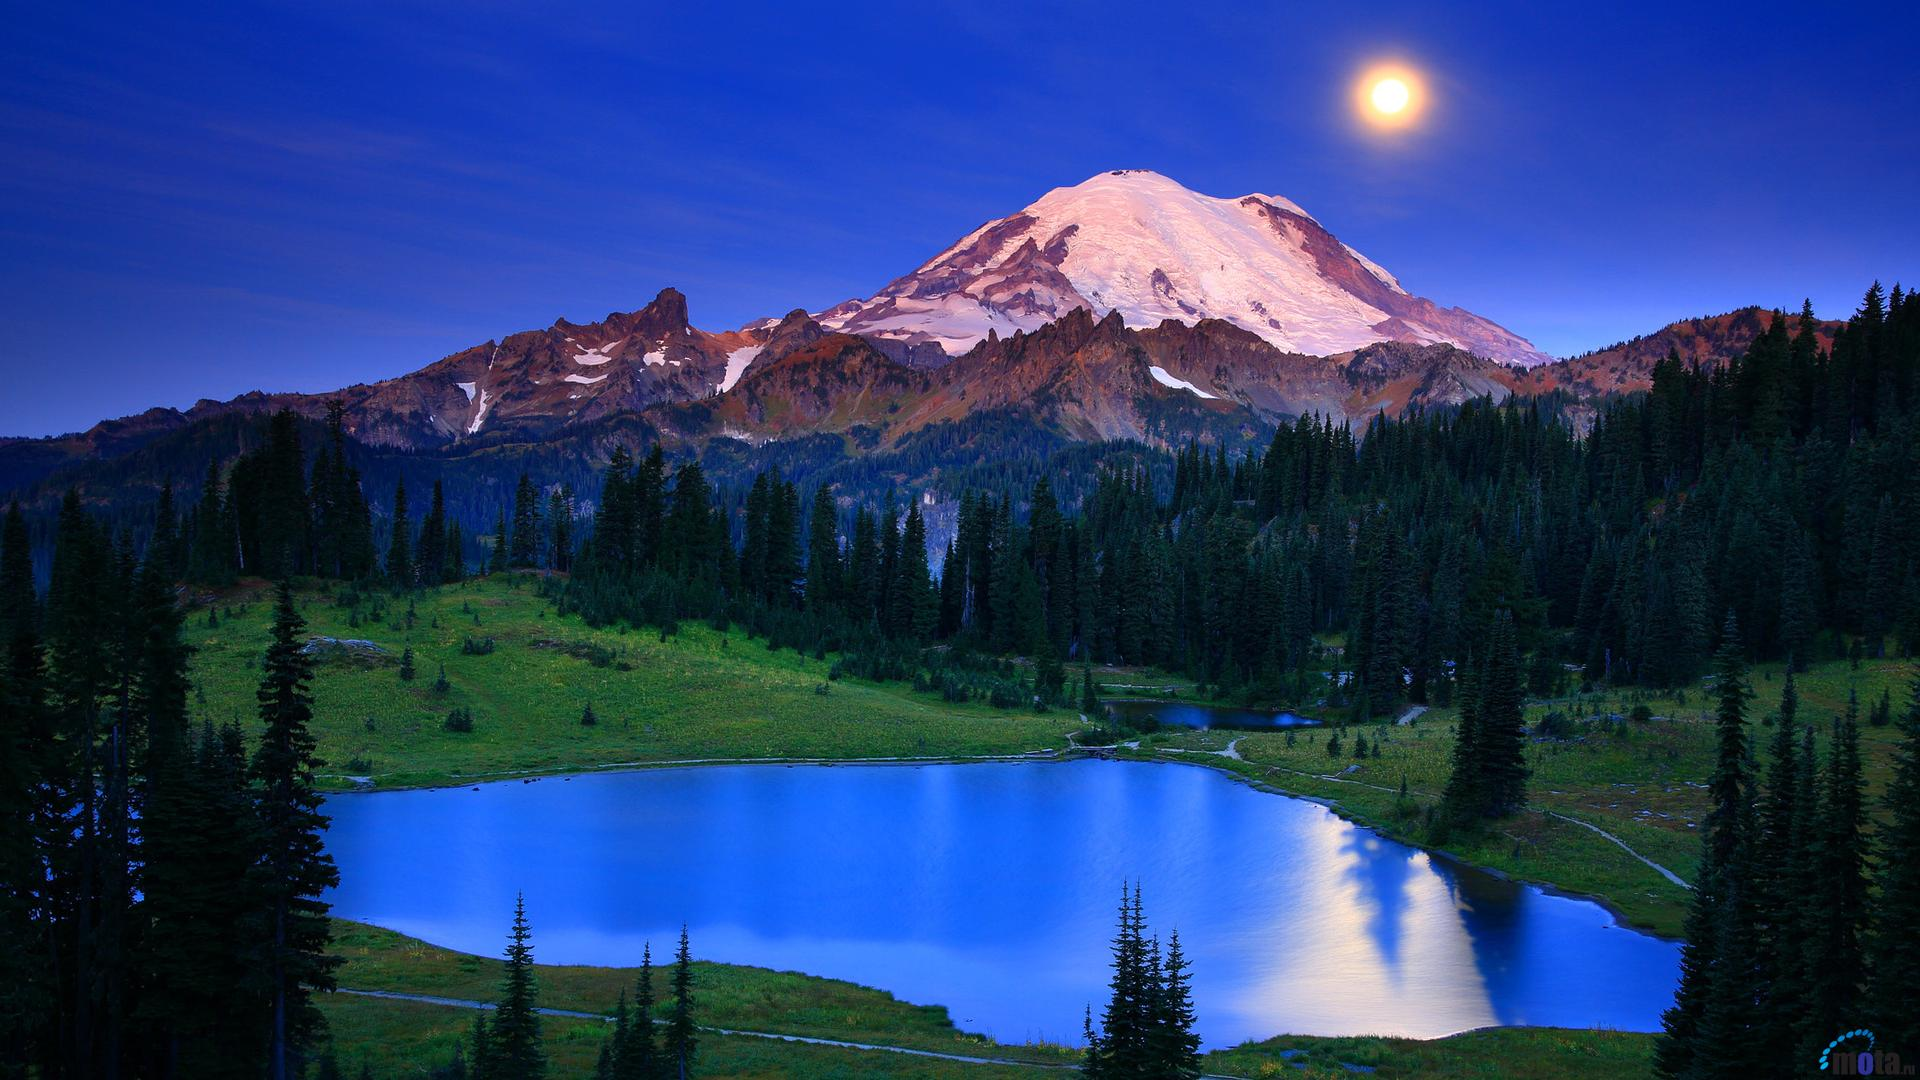 Mount Rainier National Park 1920x1080